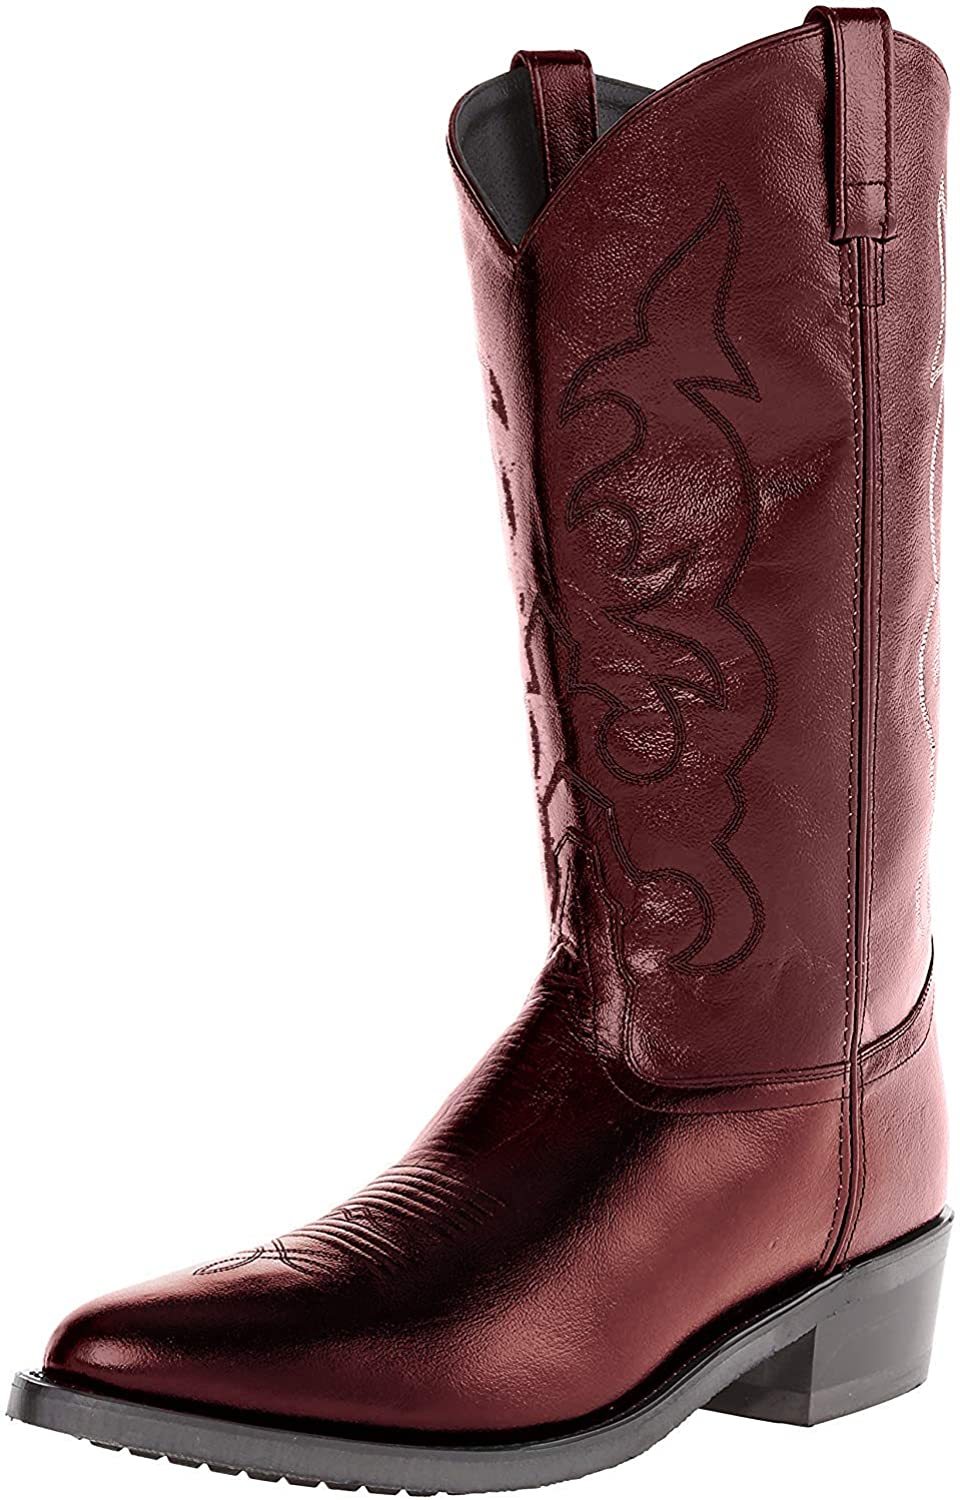 Old West Boots Cowboy Boots in cherry red